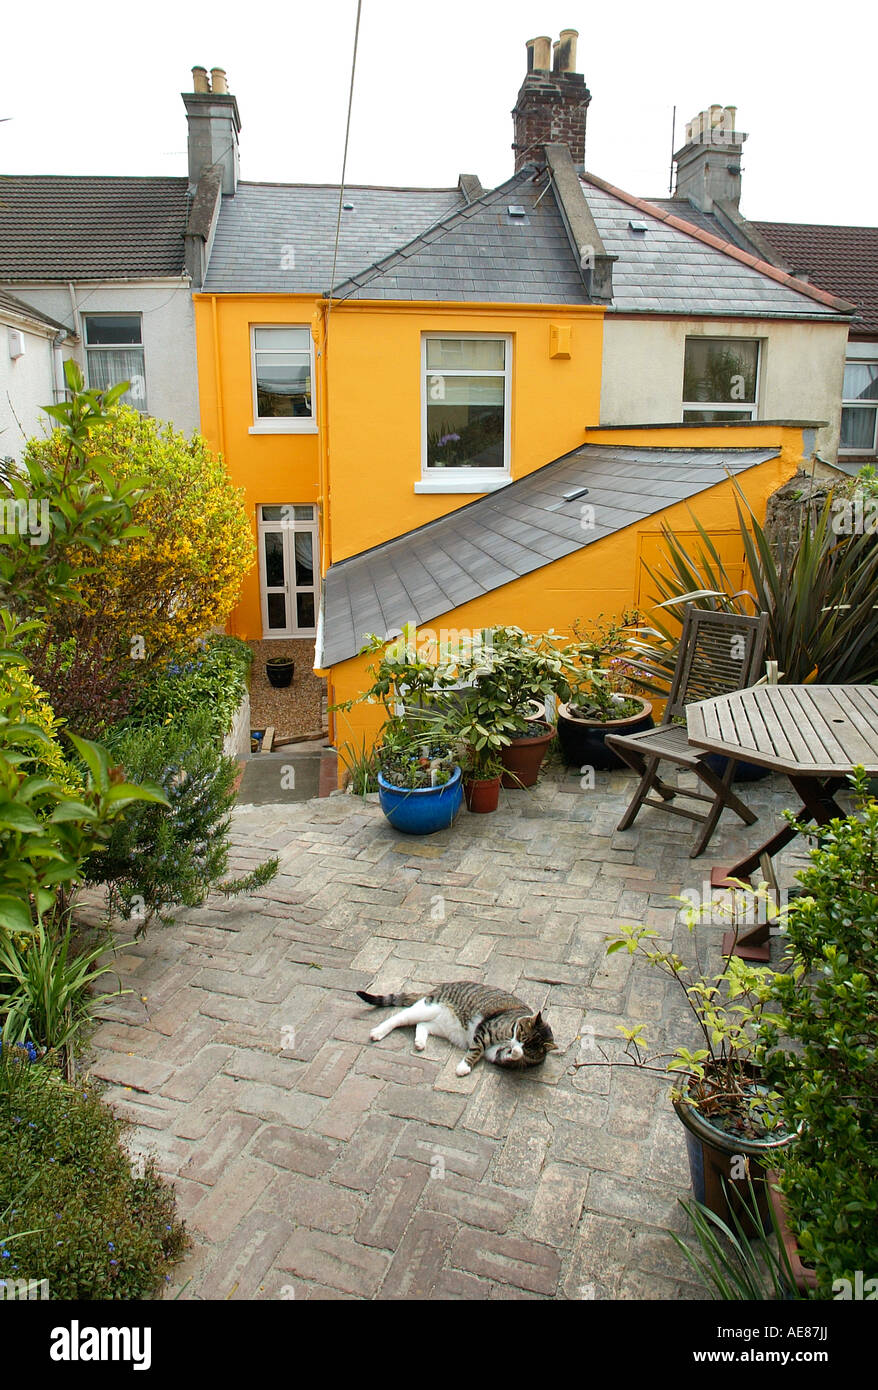 Colourful Terraced House With Small Rear Paved Garden Stock Photo